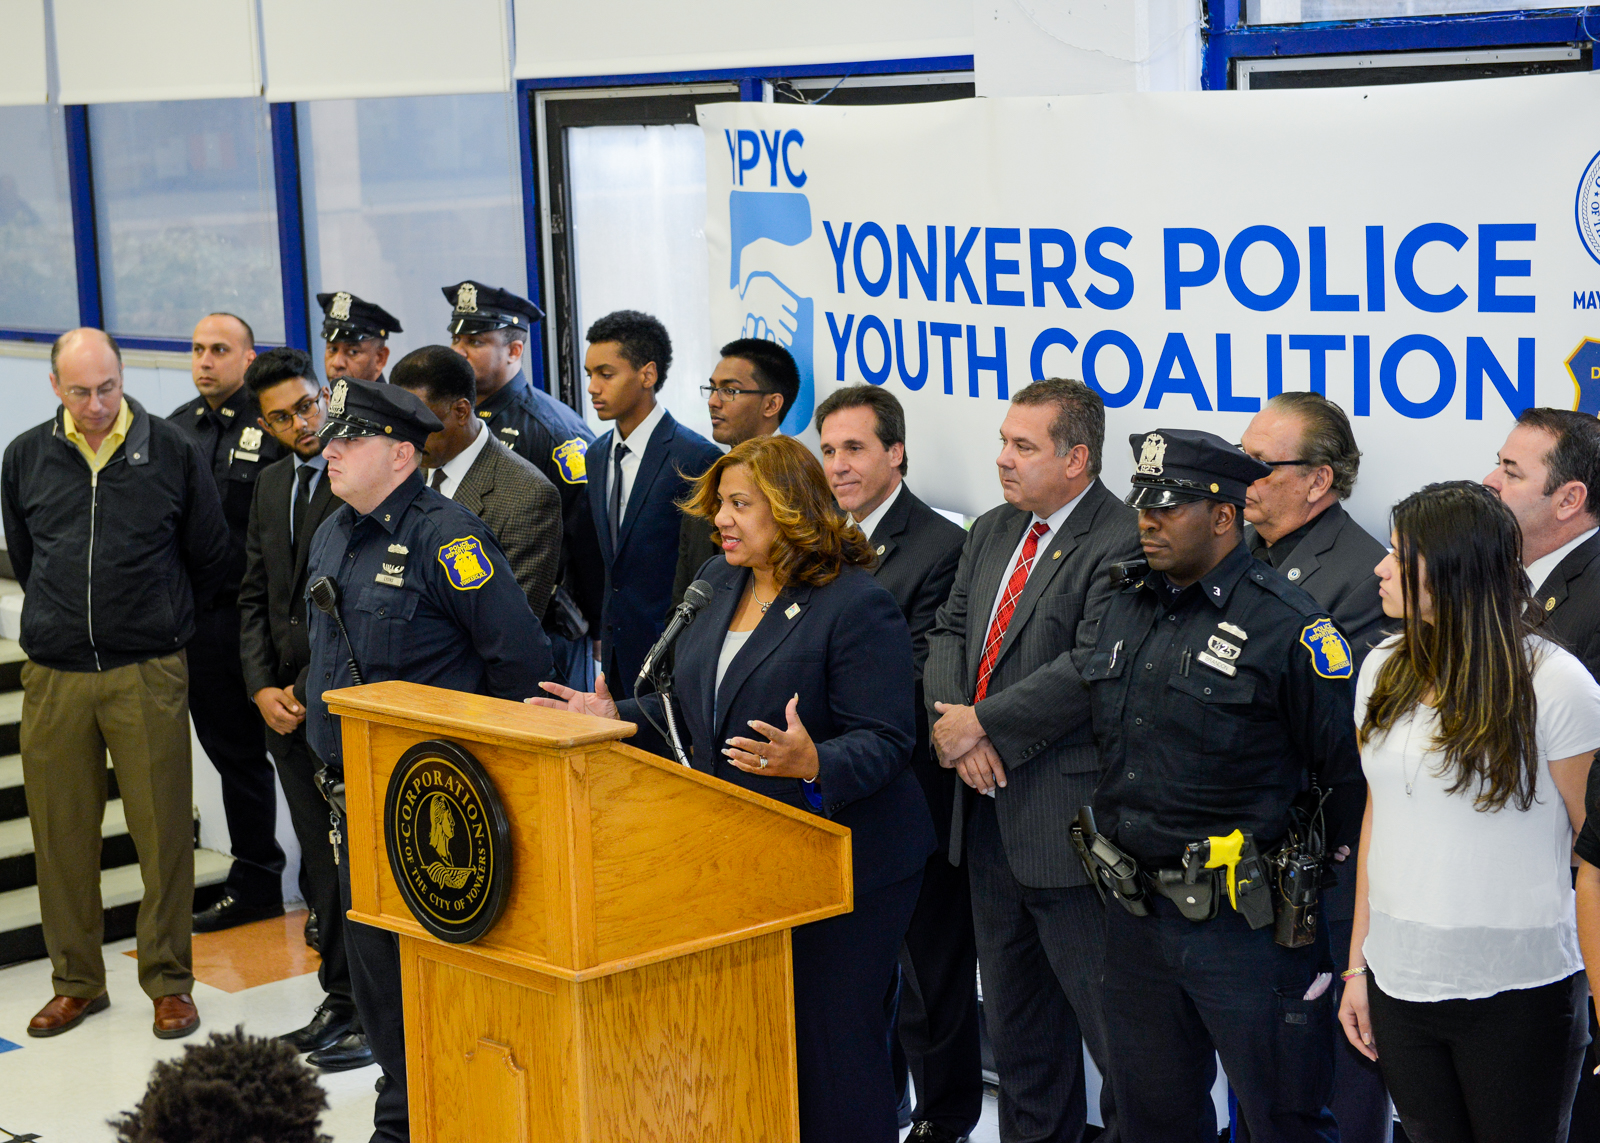 Yonkers Police Youth Coalition Announcement